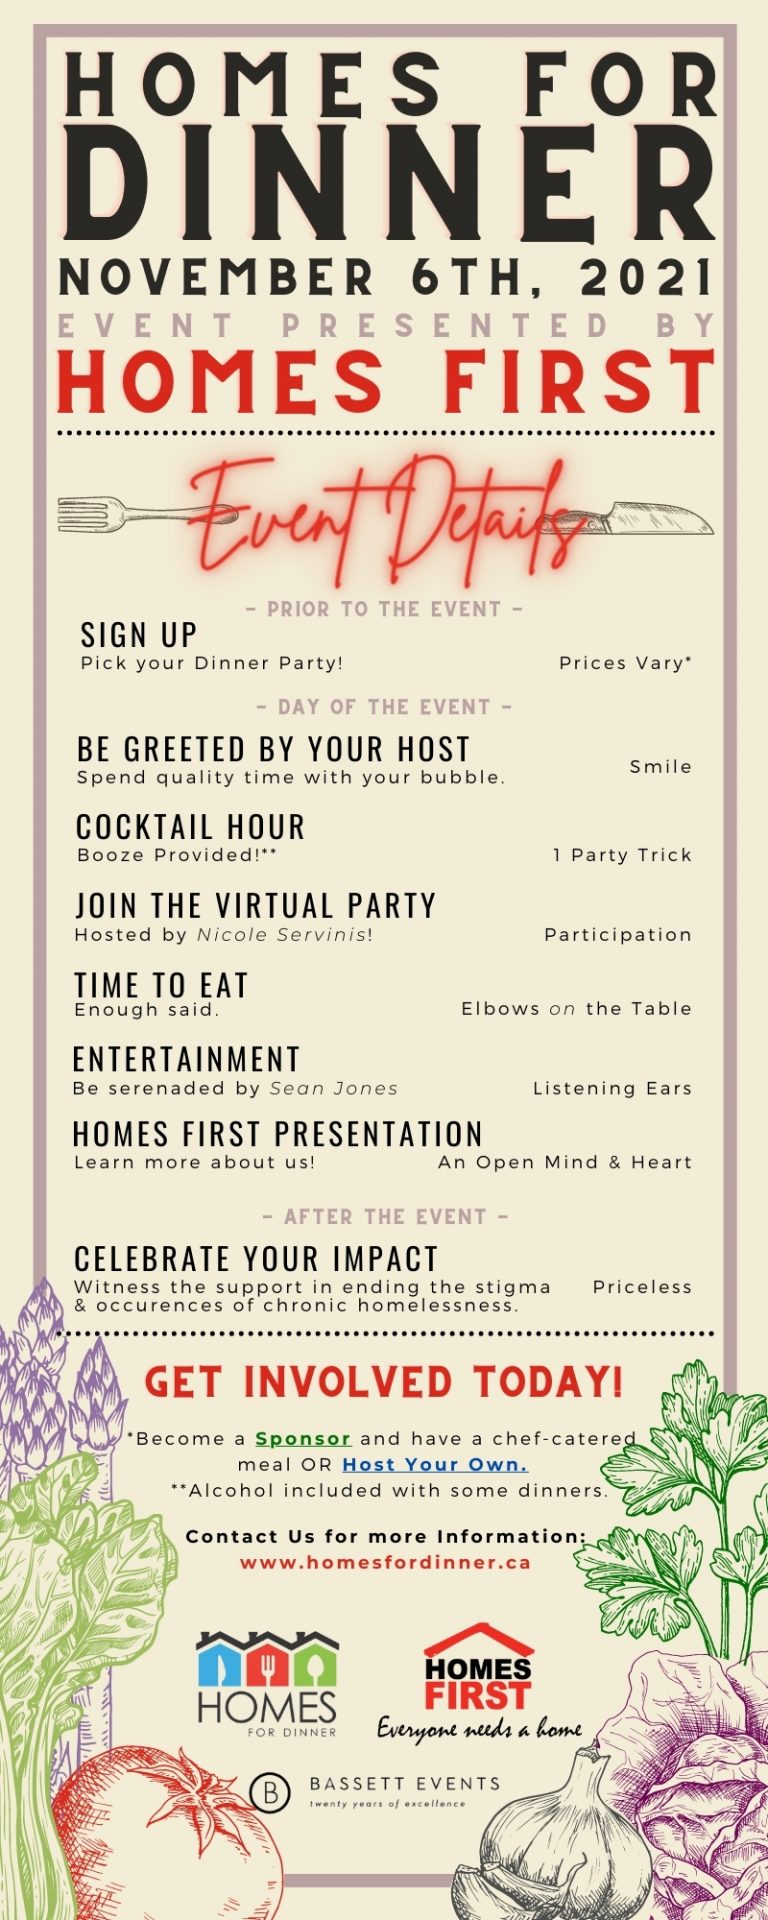 Homes for Dinner Event Details Infographic